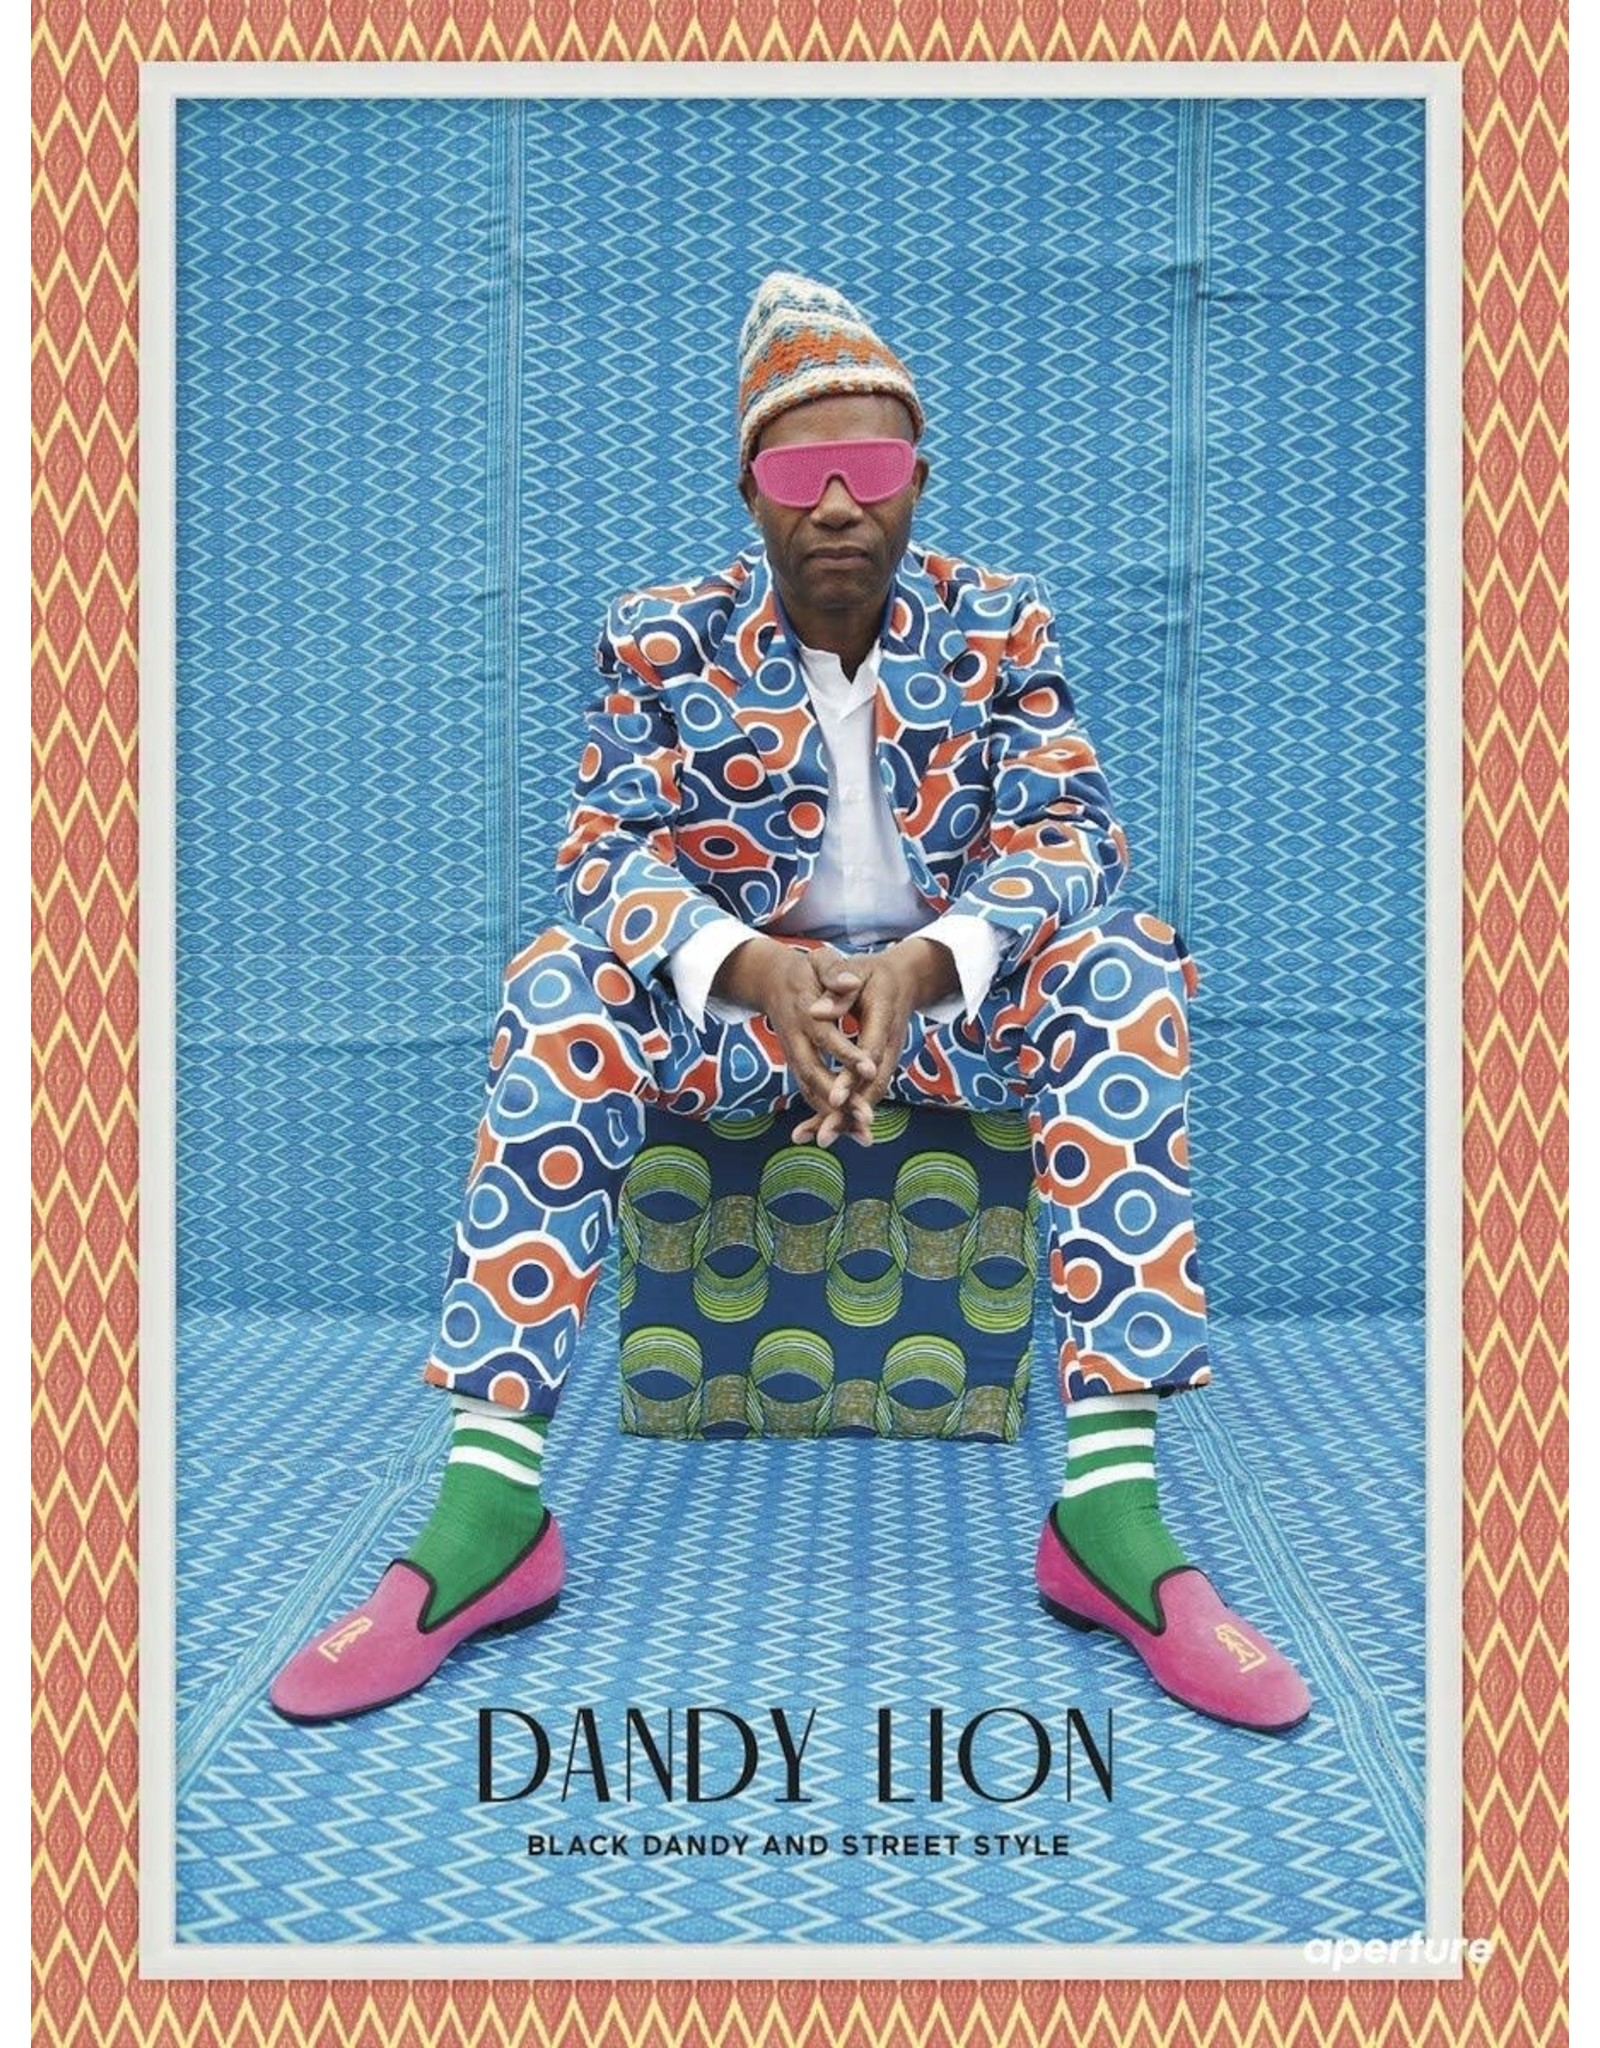 Dandy Lion - The Black Dandy and Street Style